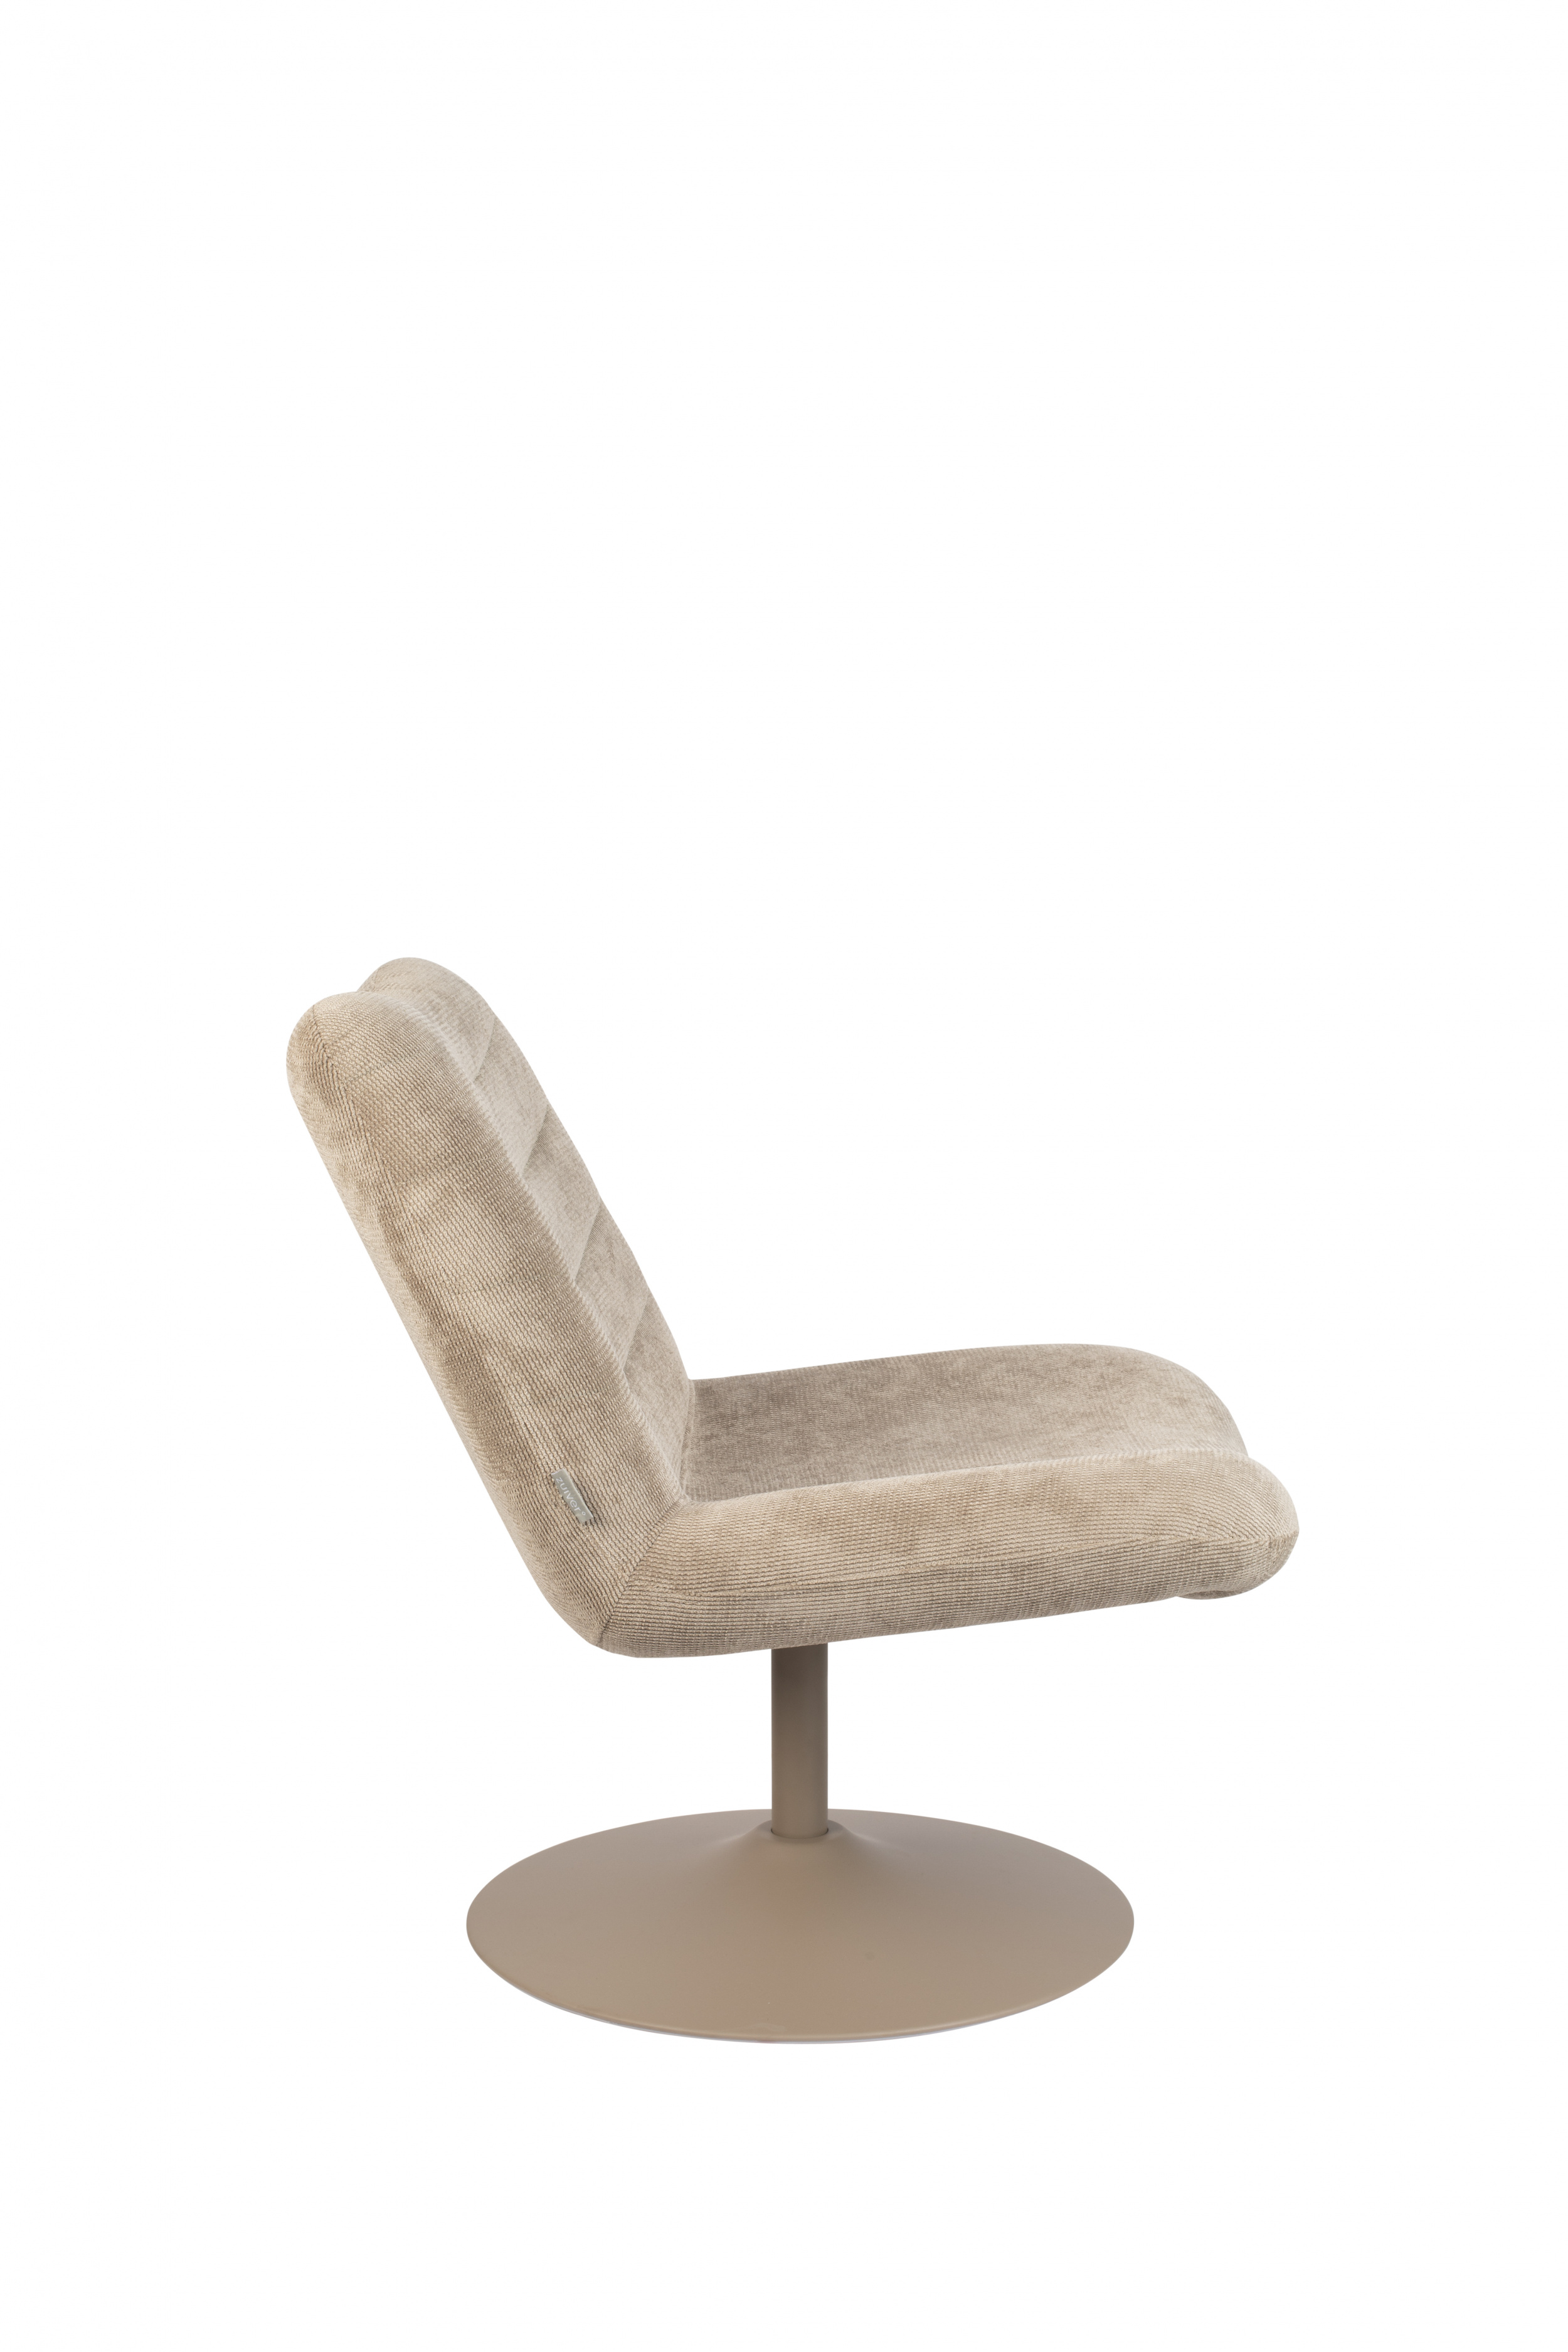 Zuiver Lounge Chair Bubba Beige